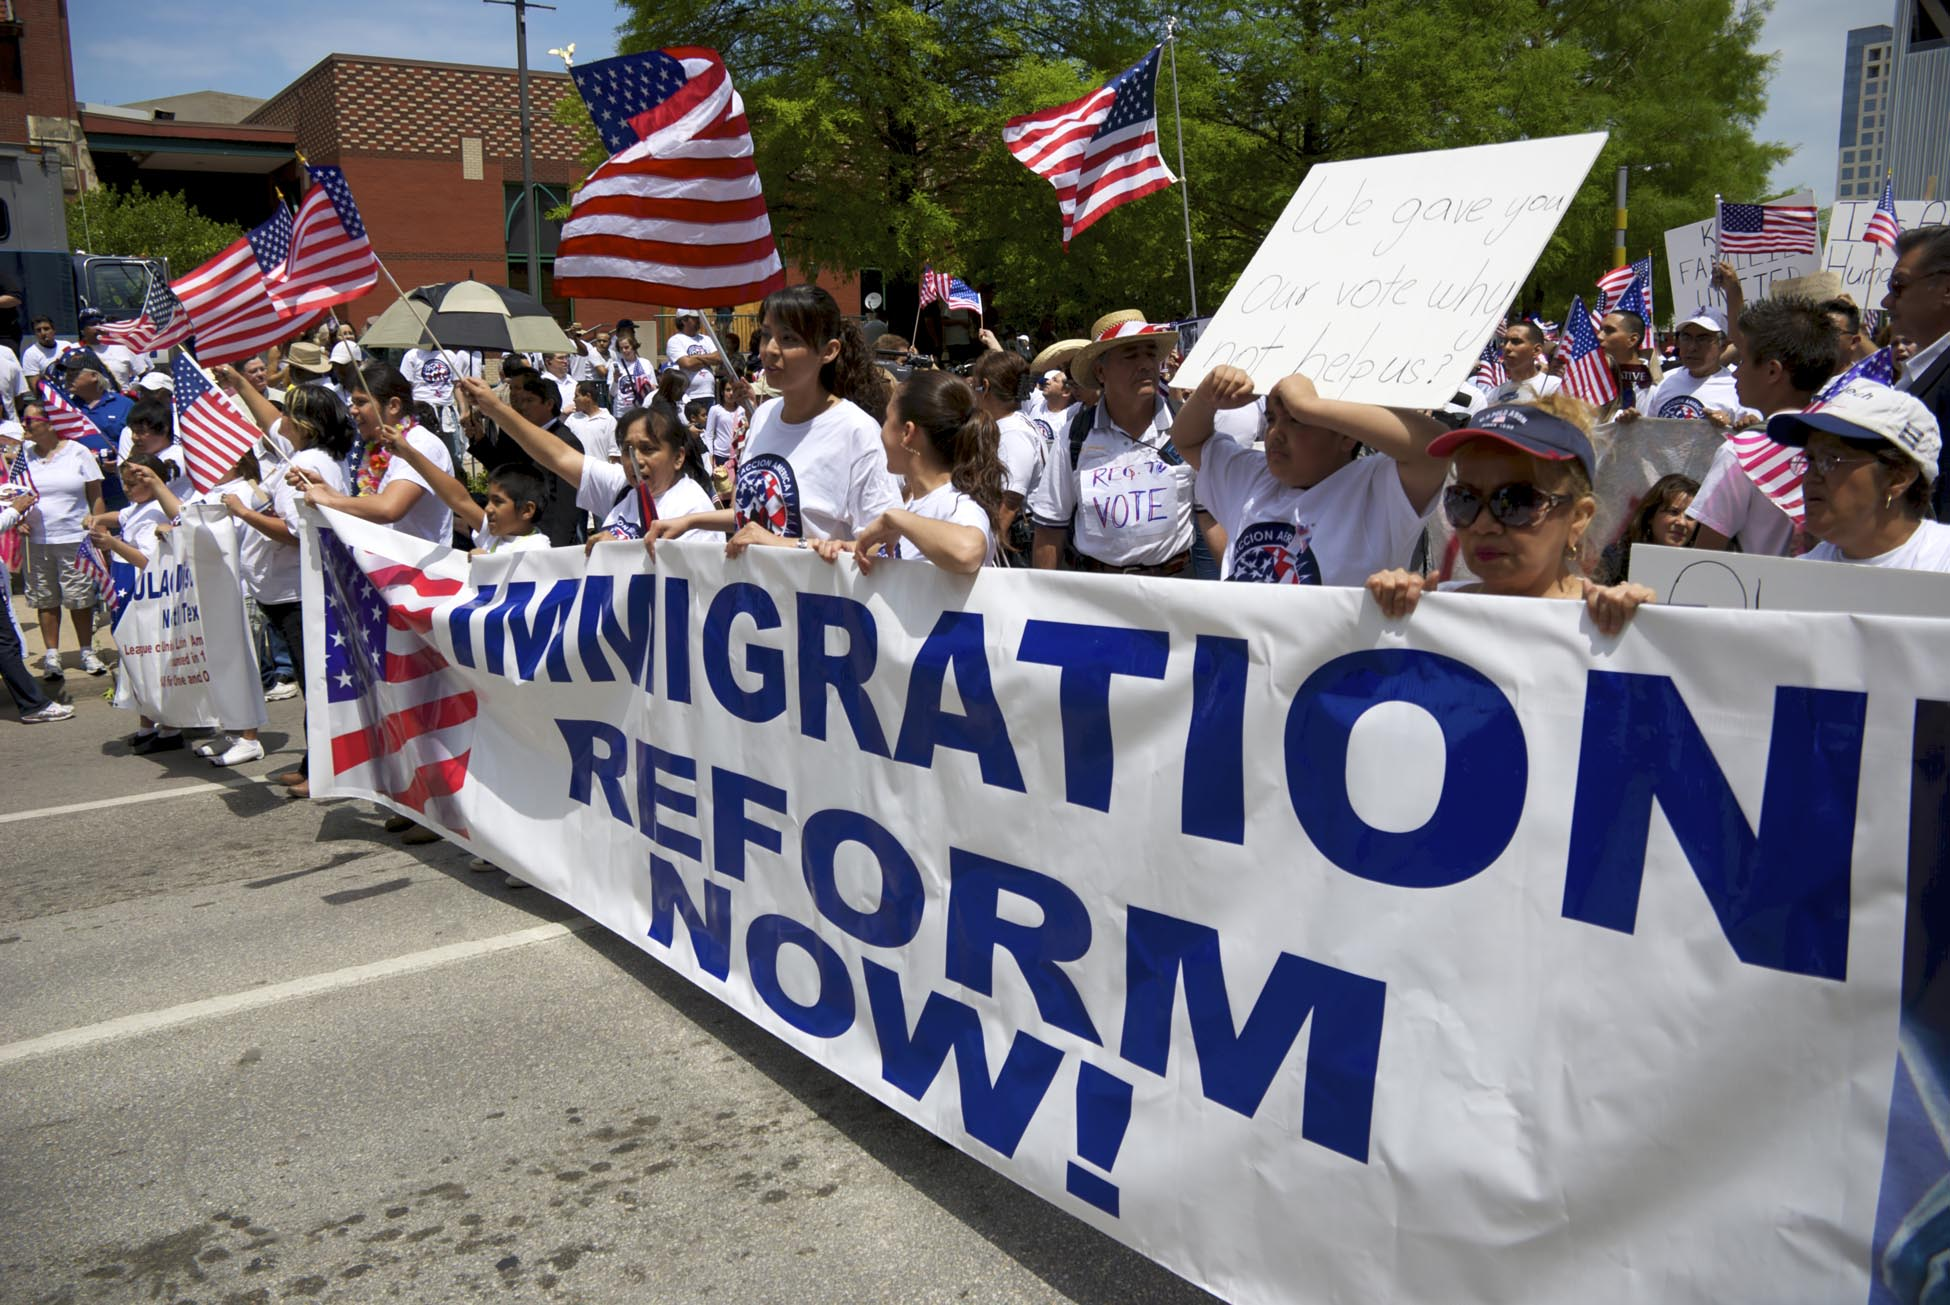 Connecticut Catholic Bishops Release Statement On Immigration Controversy